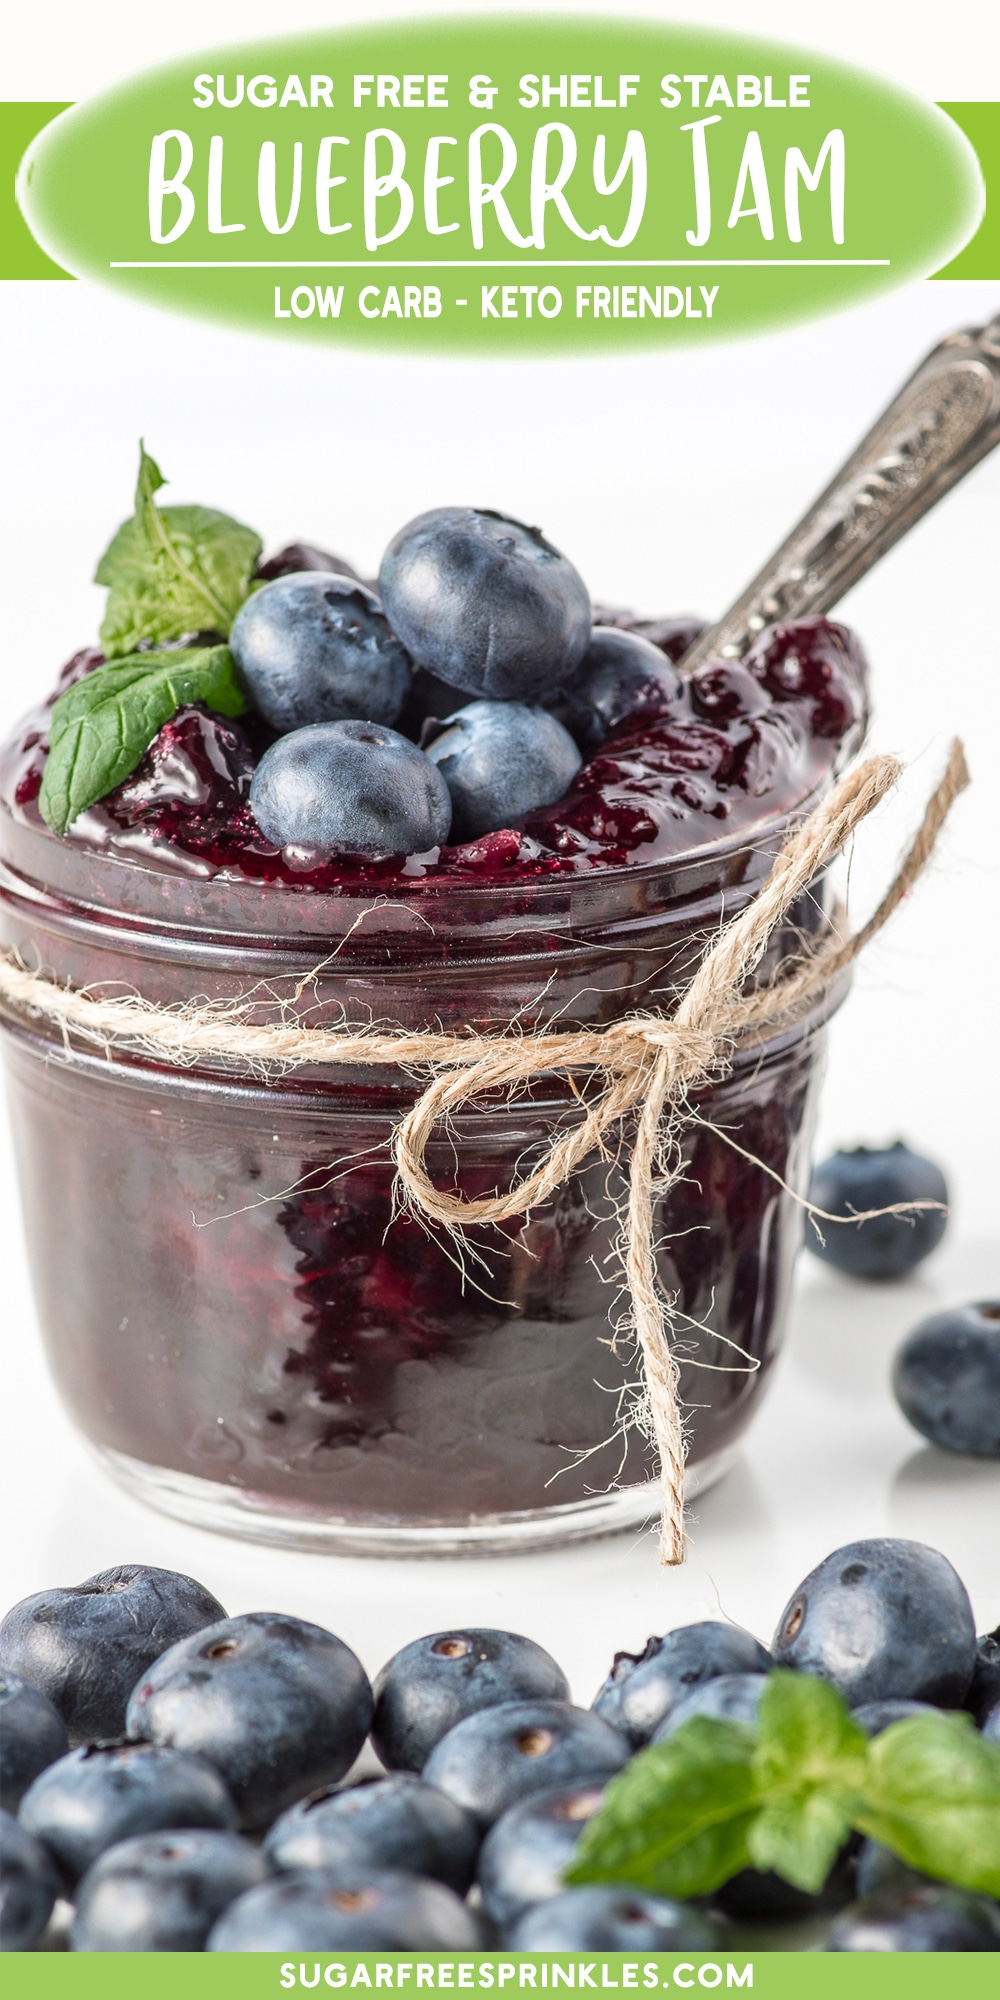 This keto-friendly blueberry jam is gooey, sticky and bursting with blueberry flavour. No weird textures or flavors either this jam really does taste like a traditional homemade jam made with sugar and fresh berries. This low carb jam is also shelf-stable for up to a year and is perfect for any gardeners with a surplus of fresh berries who want to make jam, but avoid excess sugars. A great little pantry item for all your low carb baking recipes too!